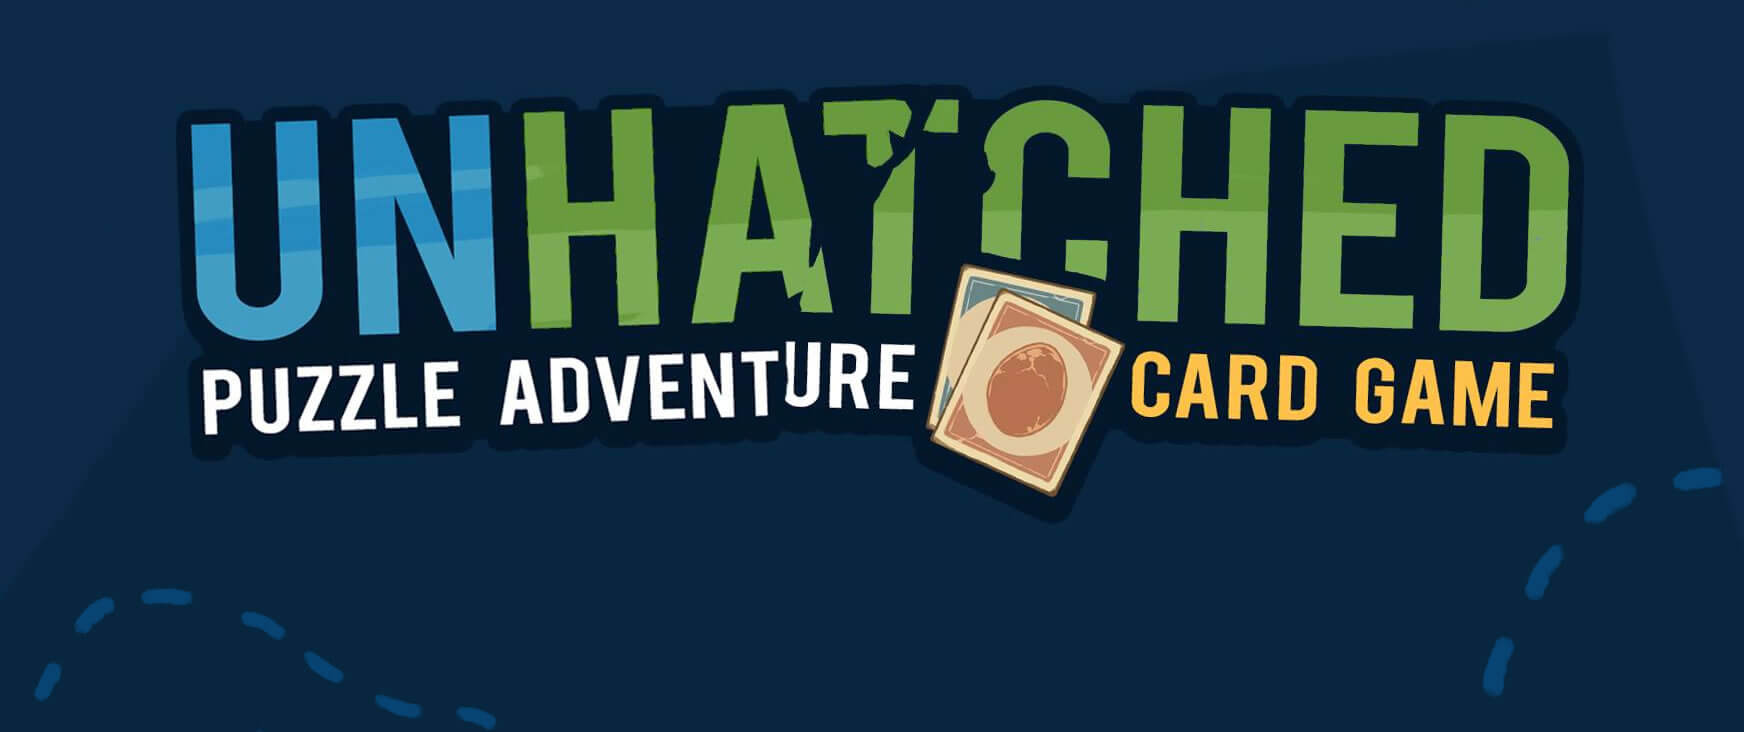 Unhatched Puzzle game